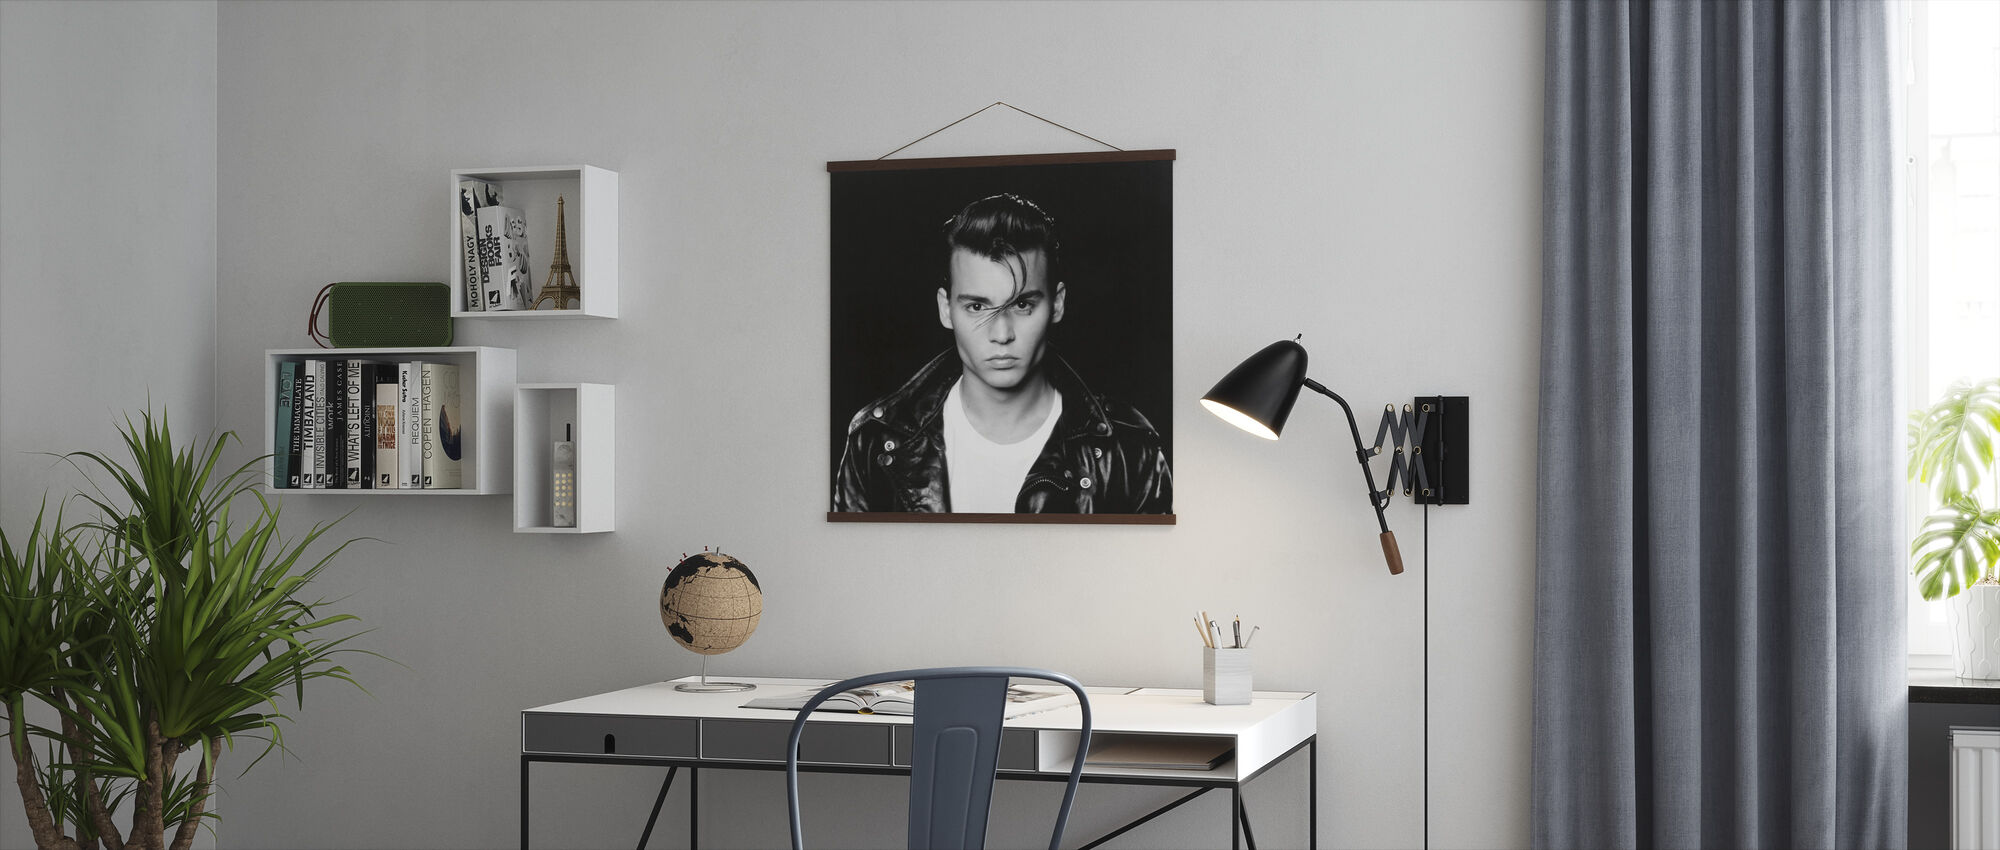 Johnny Depp in Crybaby - Poster - Office